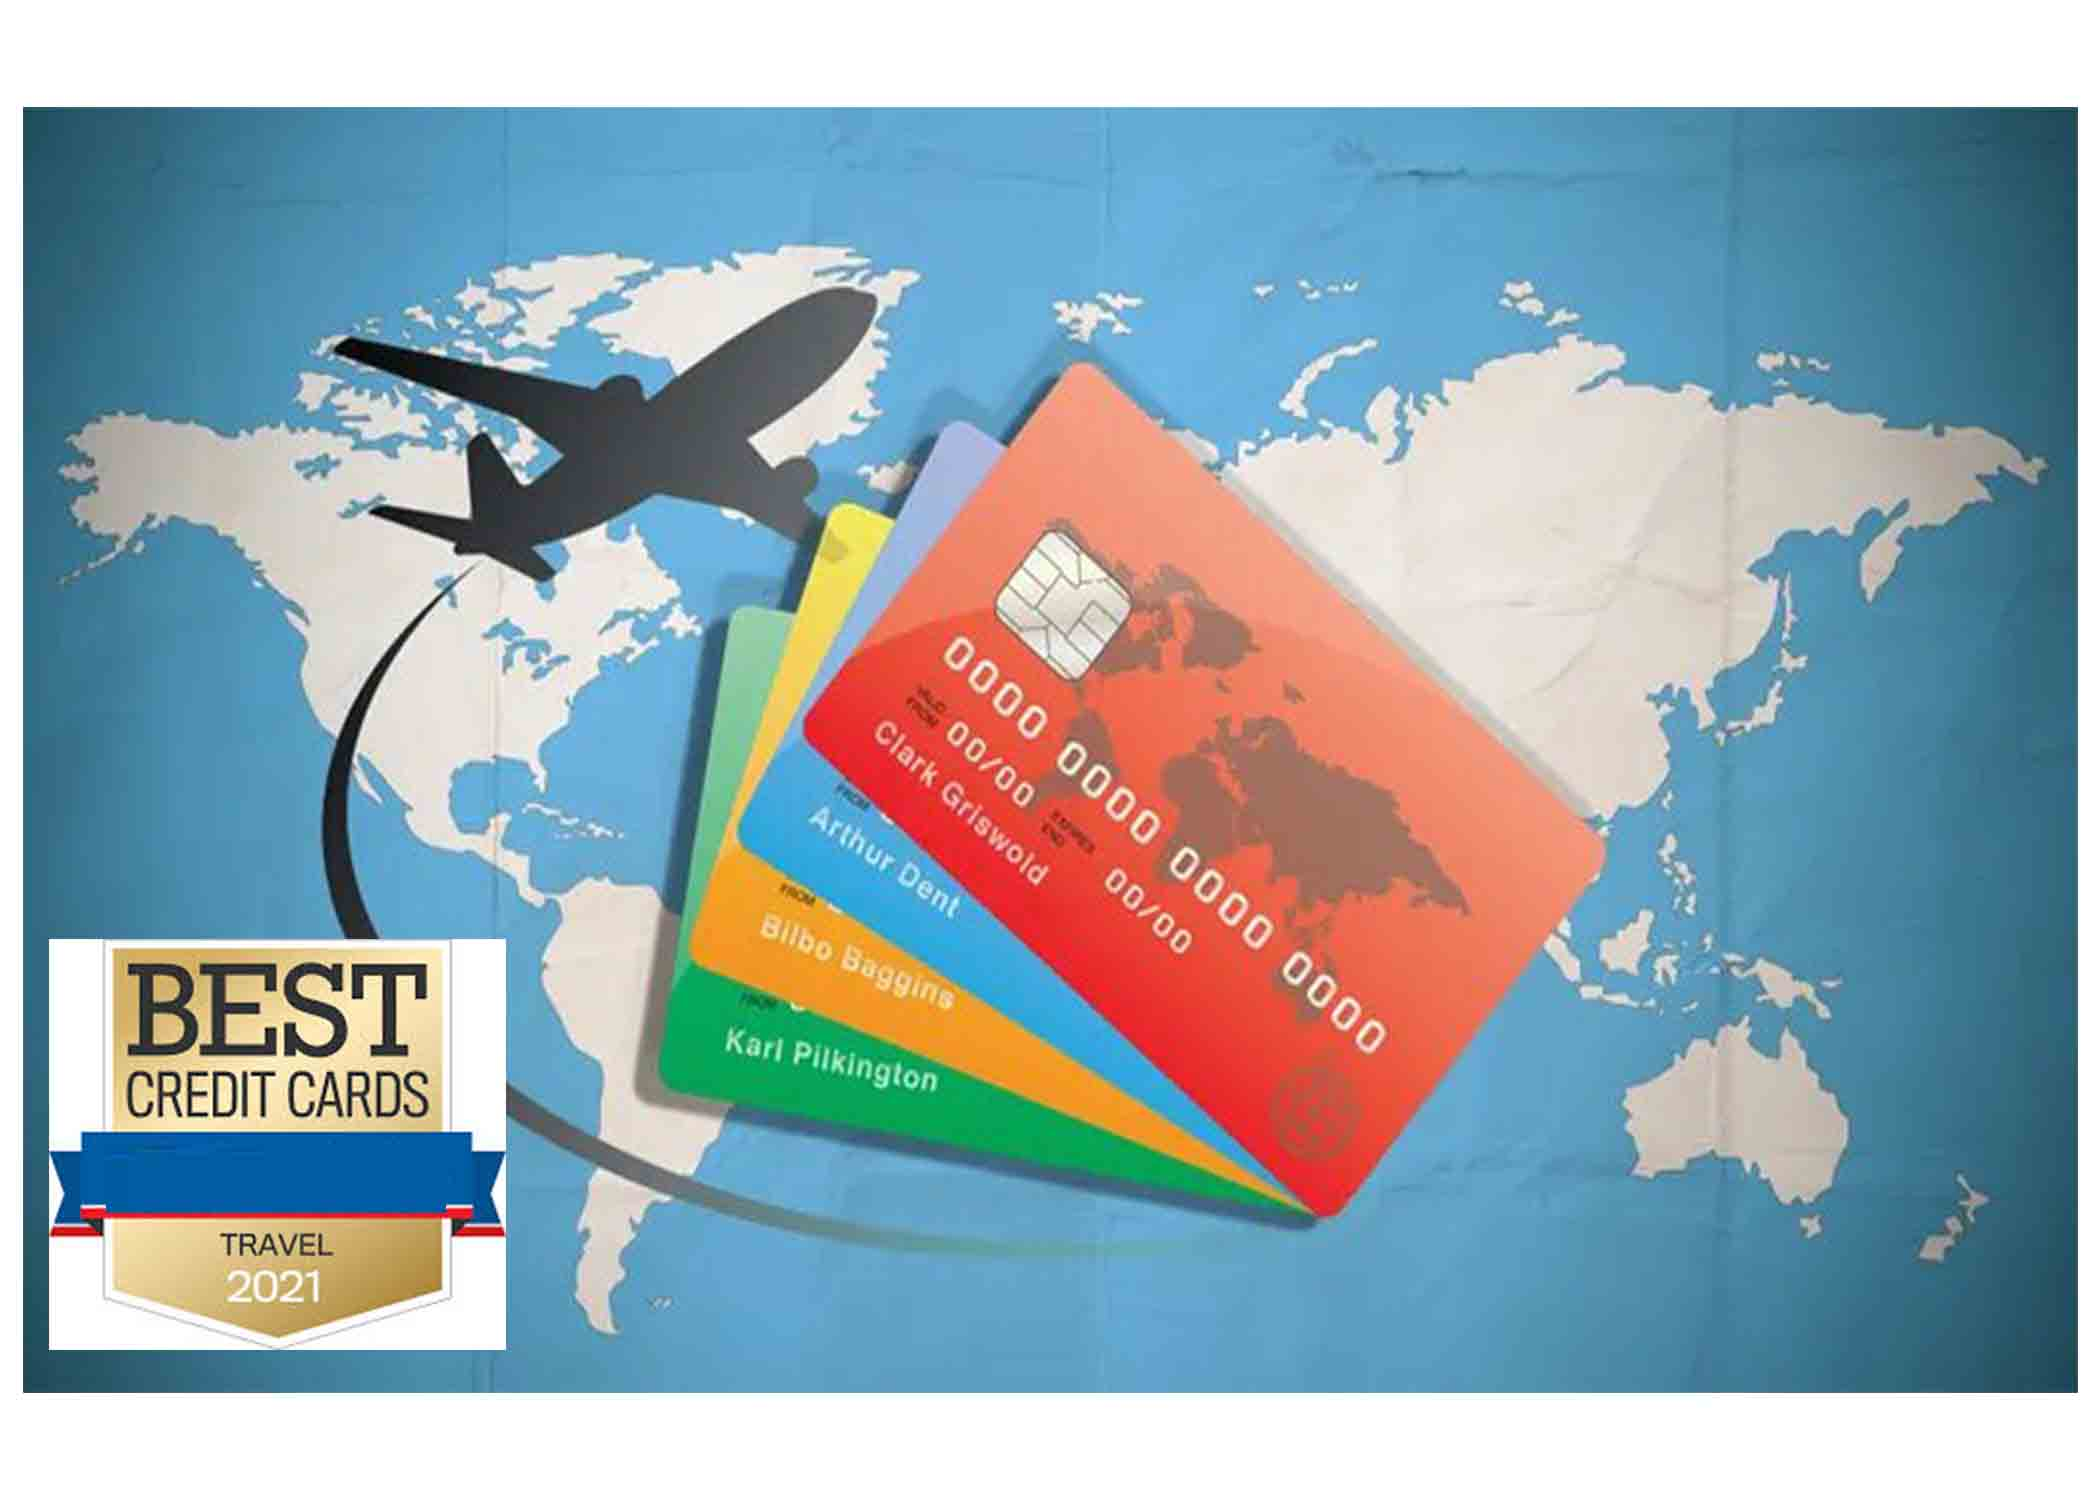 5 Best Credit Cards for Travel, Business, Airline and Hotel Bookings